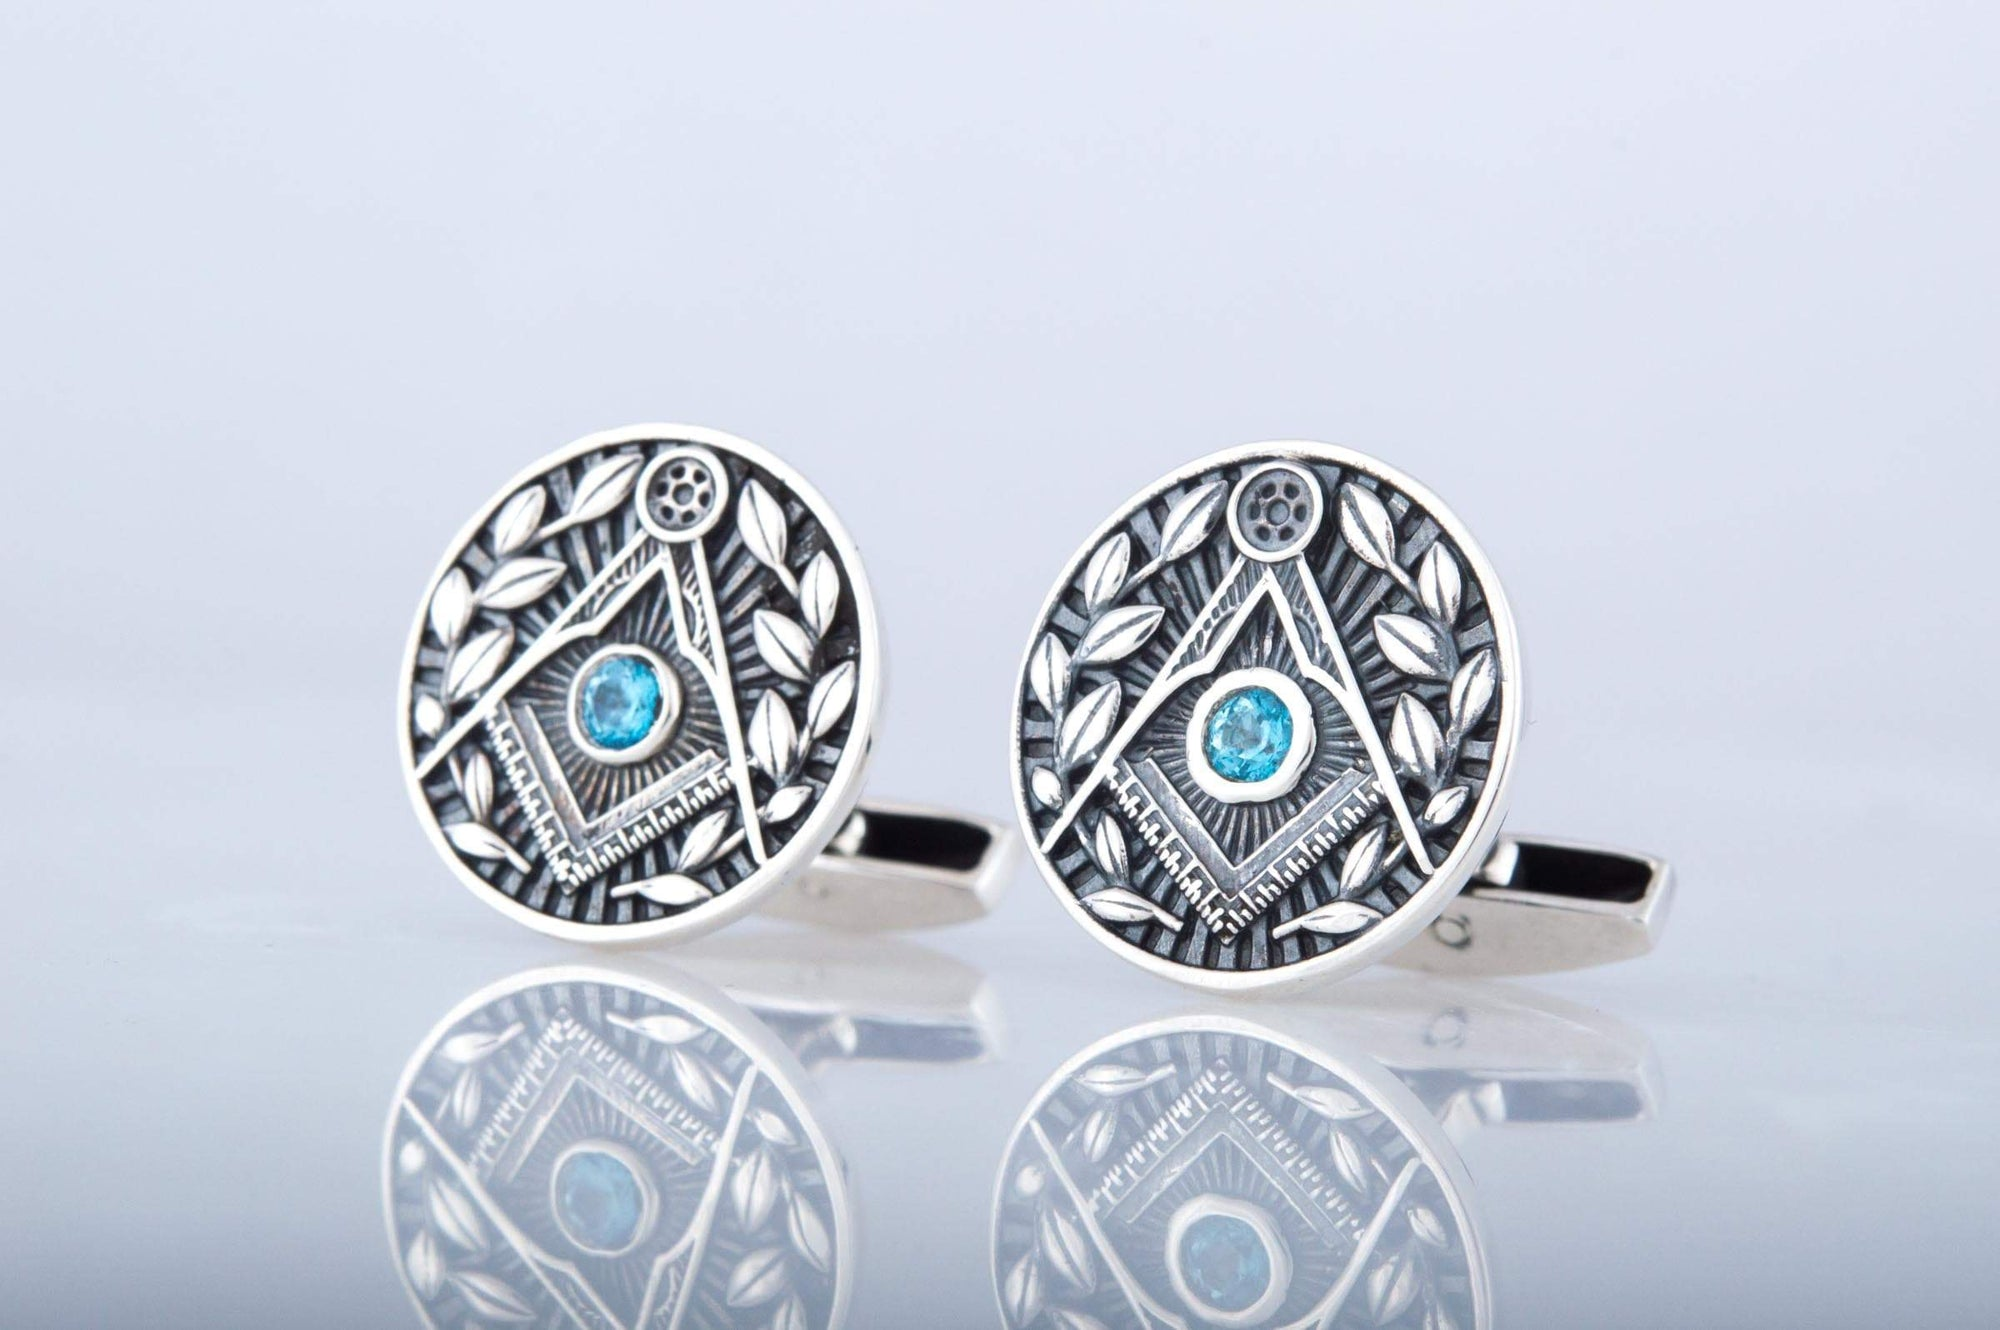 Cufflinks Masonic Square & Compass Sterling Silver Cufflinks w/ Cubic Zirconia Ancient Treasures Ancientreasures Viking Odin Thor Mjolnir Celtic Ancient Egypt Norse Norse Mythology